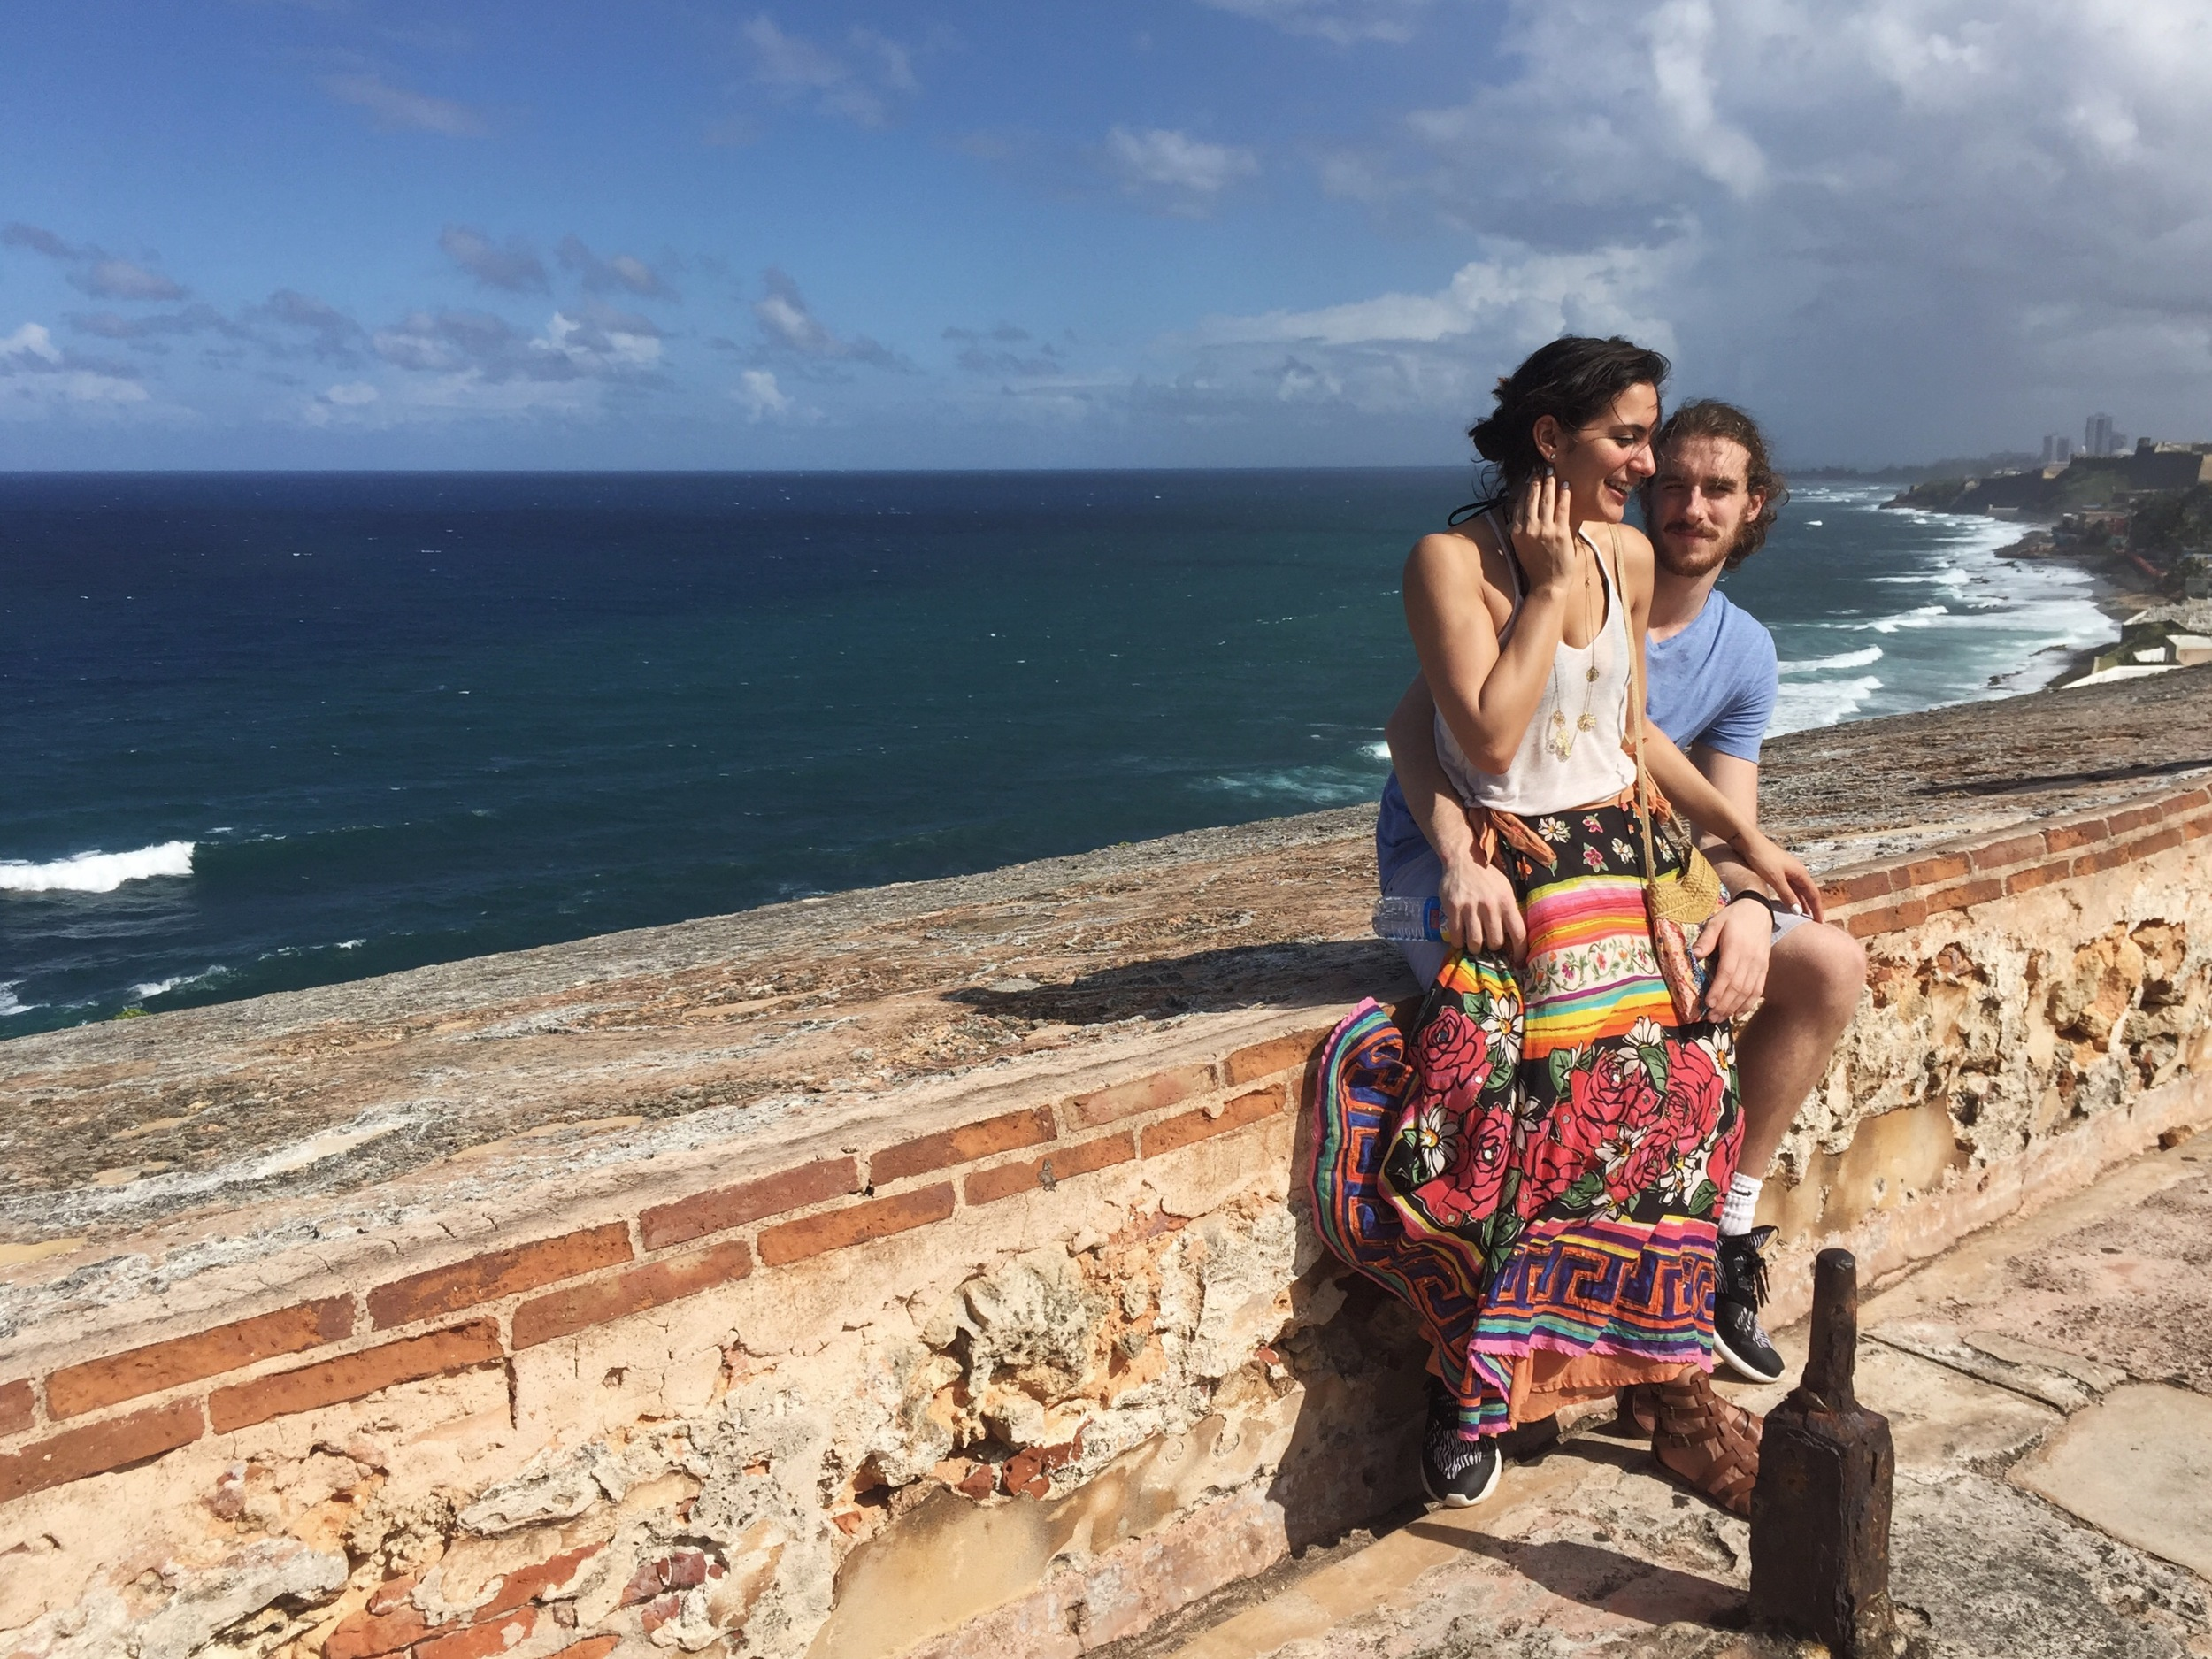 Aren't we adorable? The wind was all over the place at  El Morro  and this is the only decent picture we took where I wasn't aggressively fighting off my flyaways.